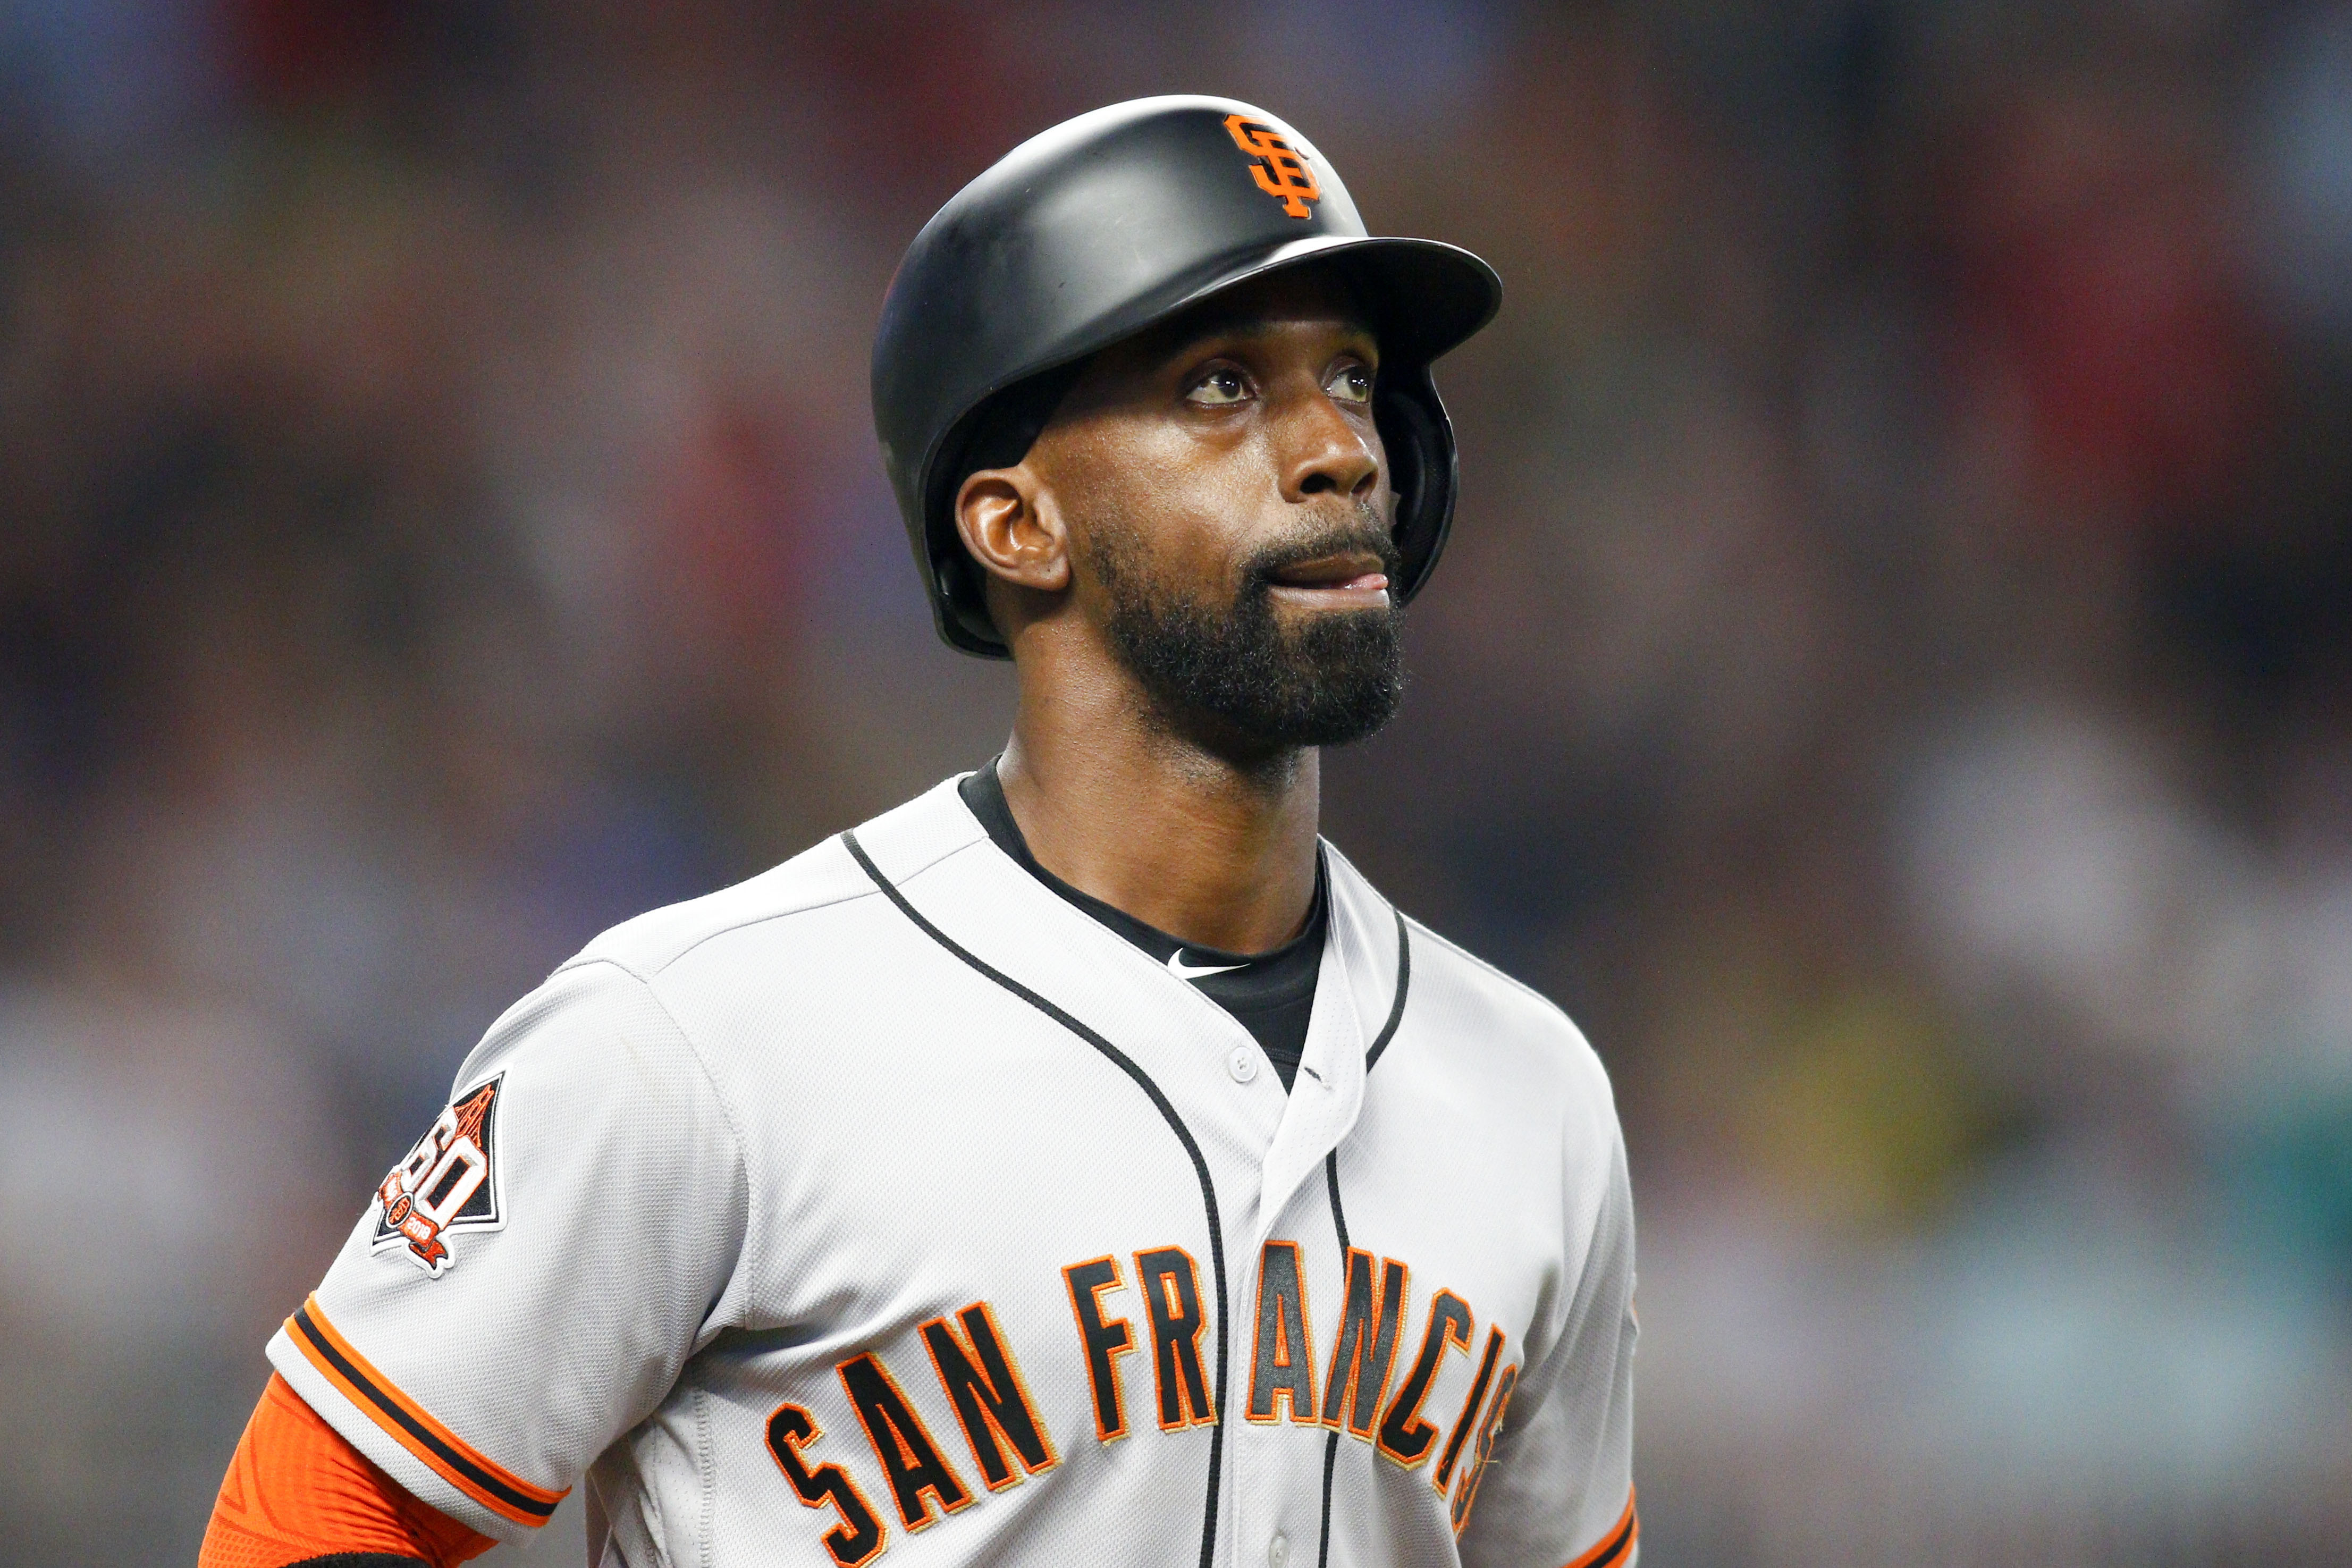 Andrew McCutchen traded to the Yankees: What does it mean?